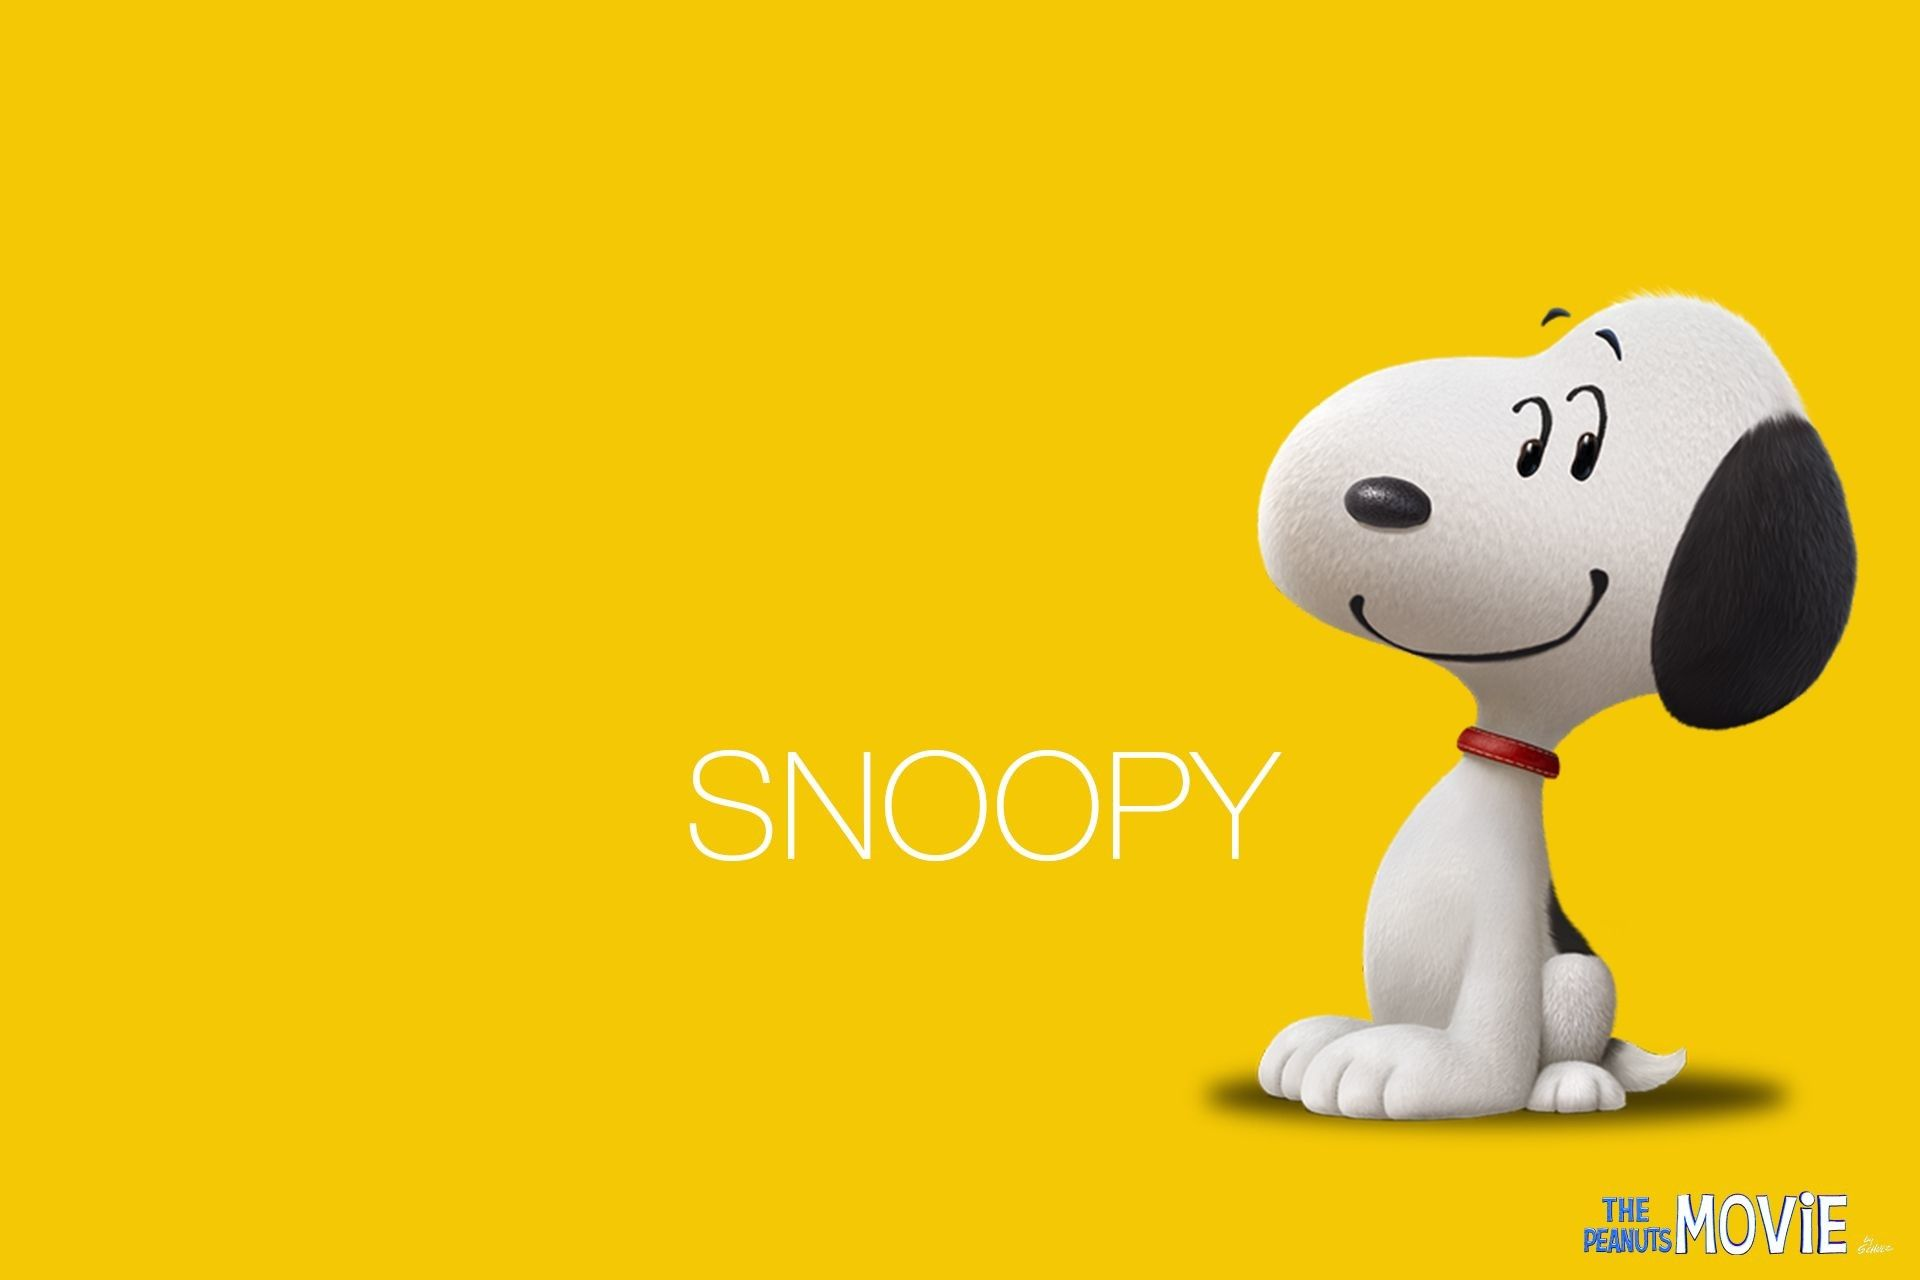 Res 1920x1280 Snoopy Hd Wallpapers Snoopy Wallpaper Snoopy Wallpaper Desktop Snoopy